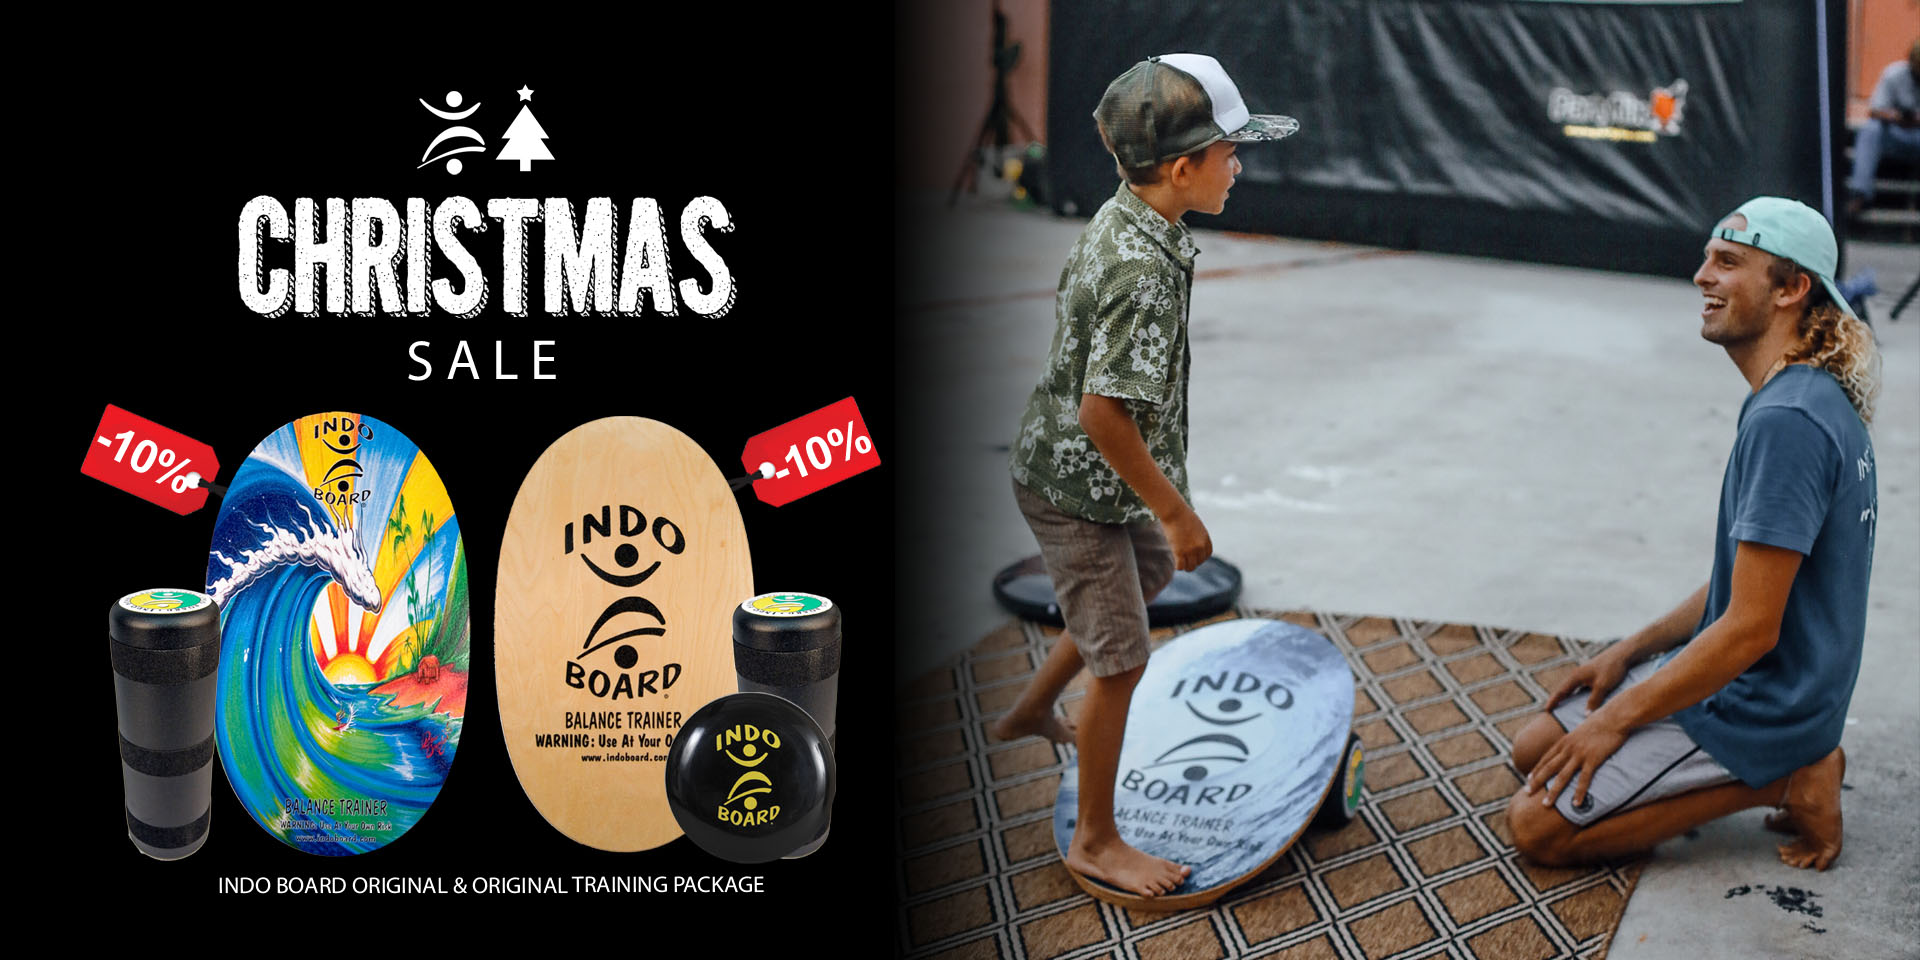 INDO Balance Boards for Christmas